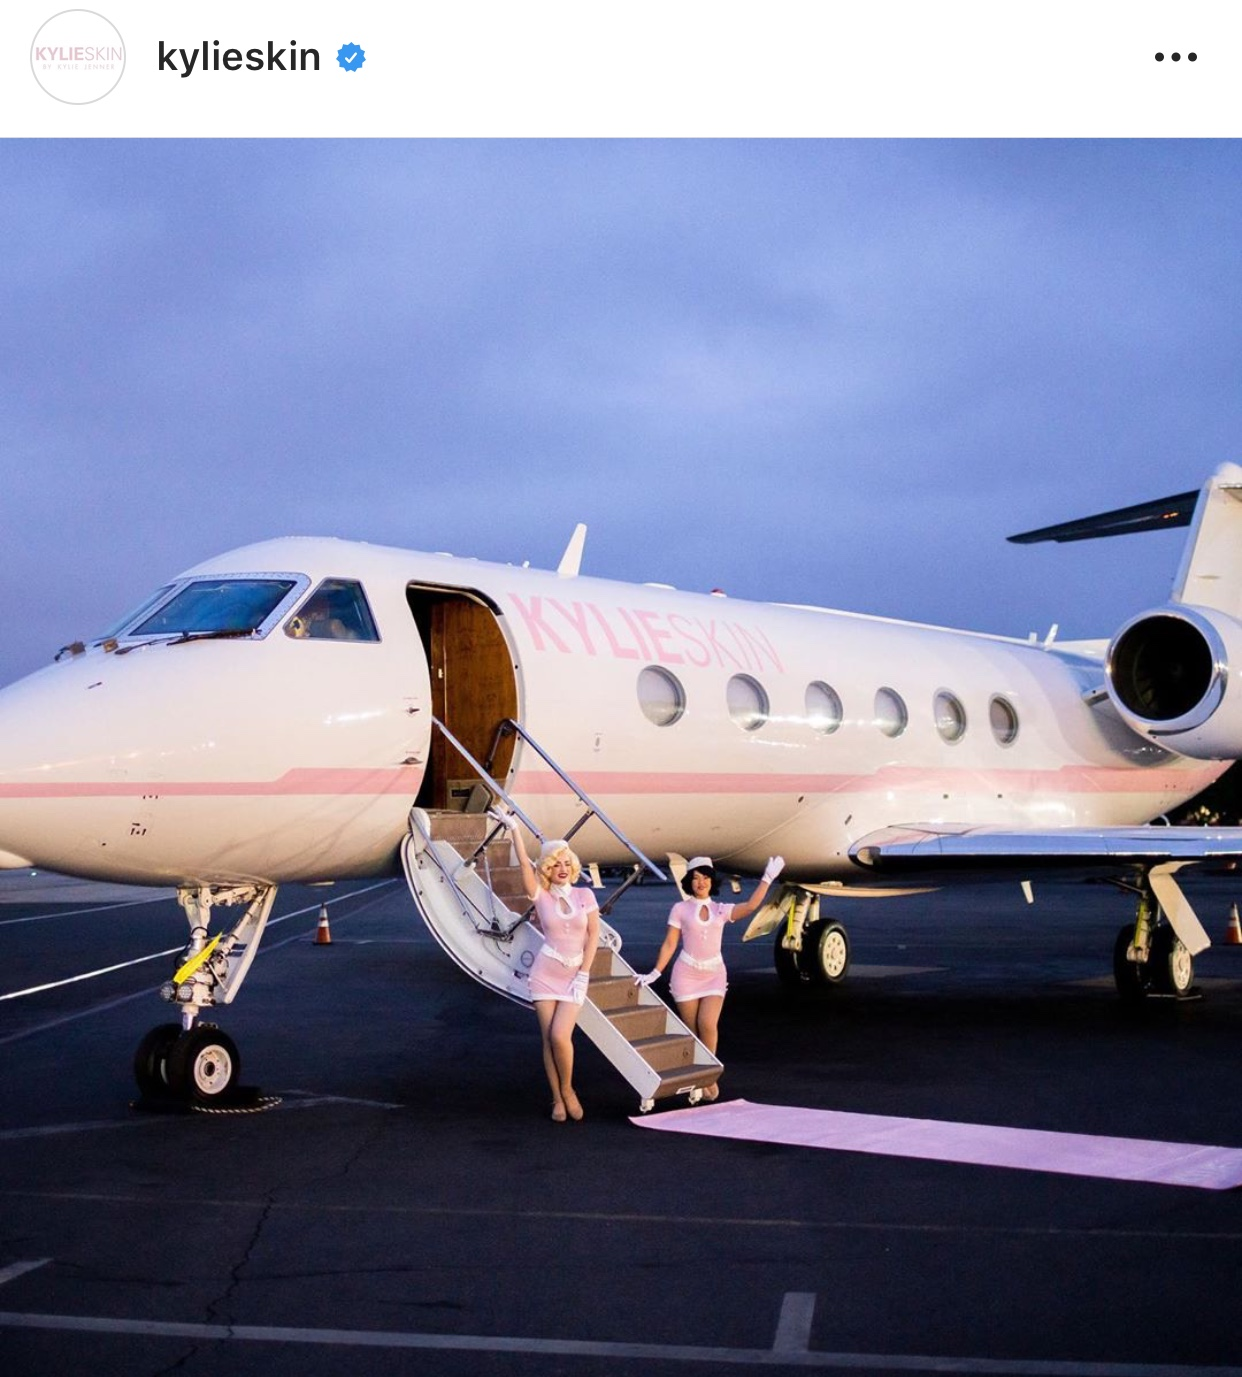 kylie skincare plane hollywood branded